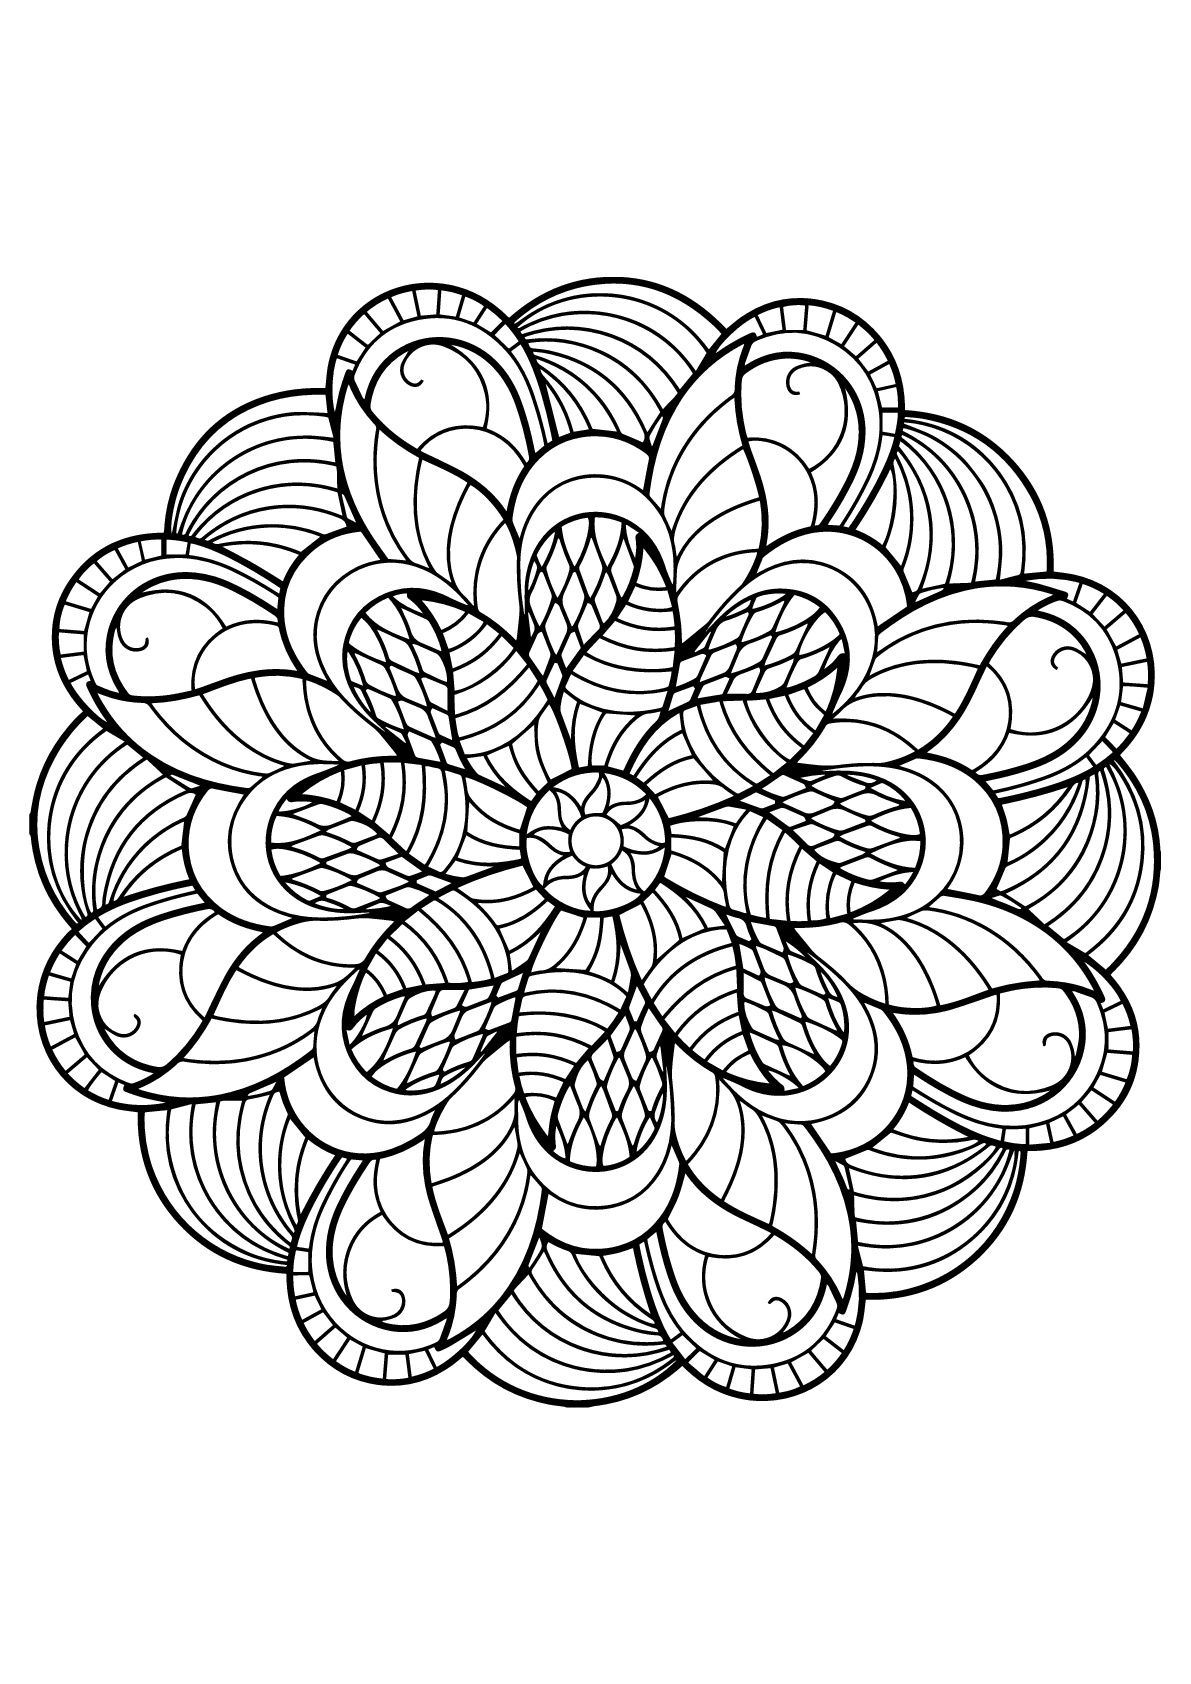 free mandala coloring pages for kids mandalas to color for kids  mandalas kids coloring pages free coloring for mandala pages kids